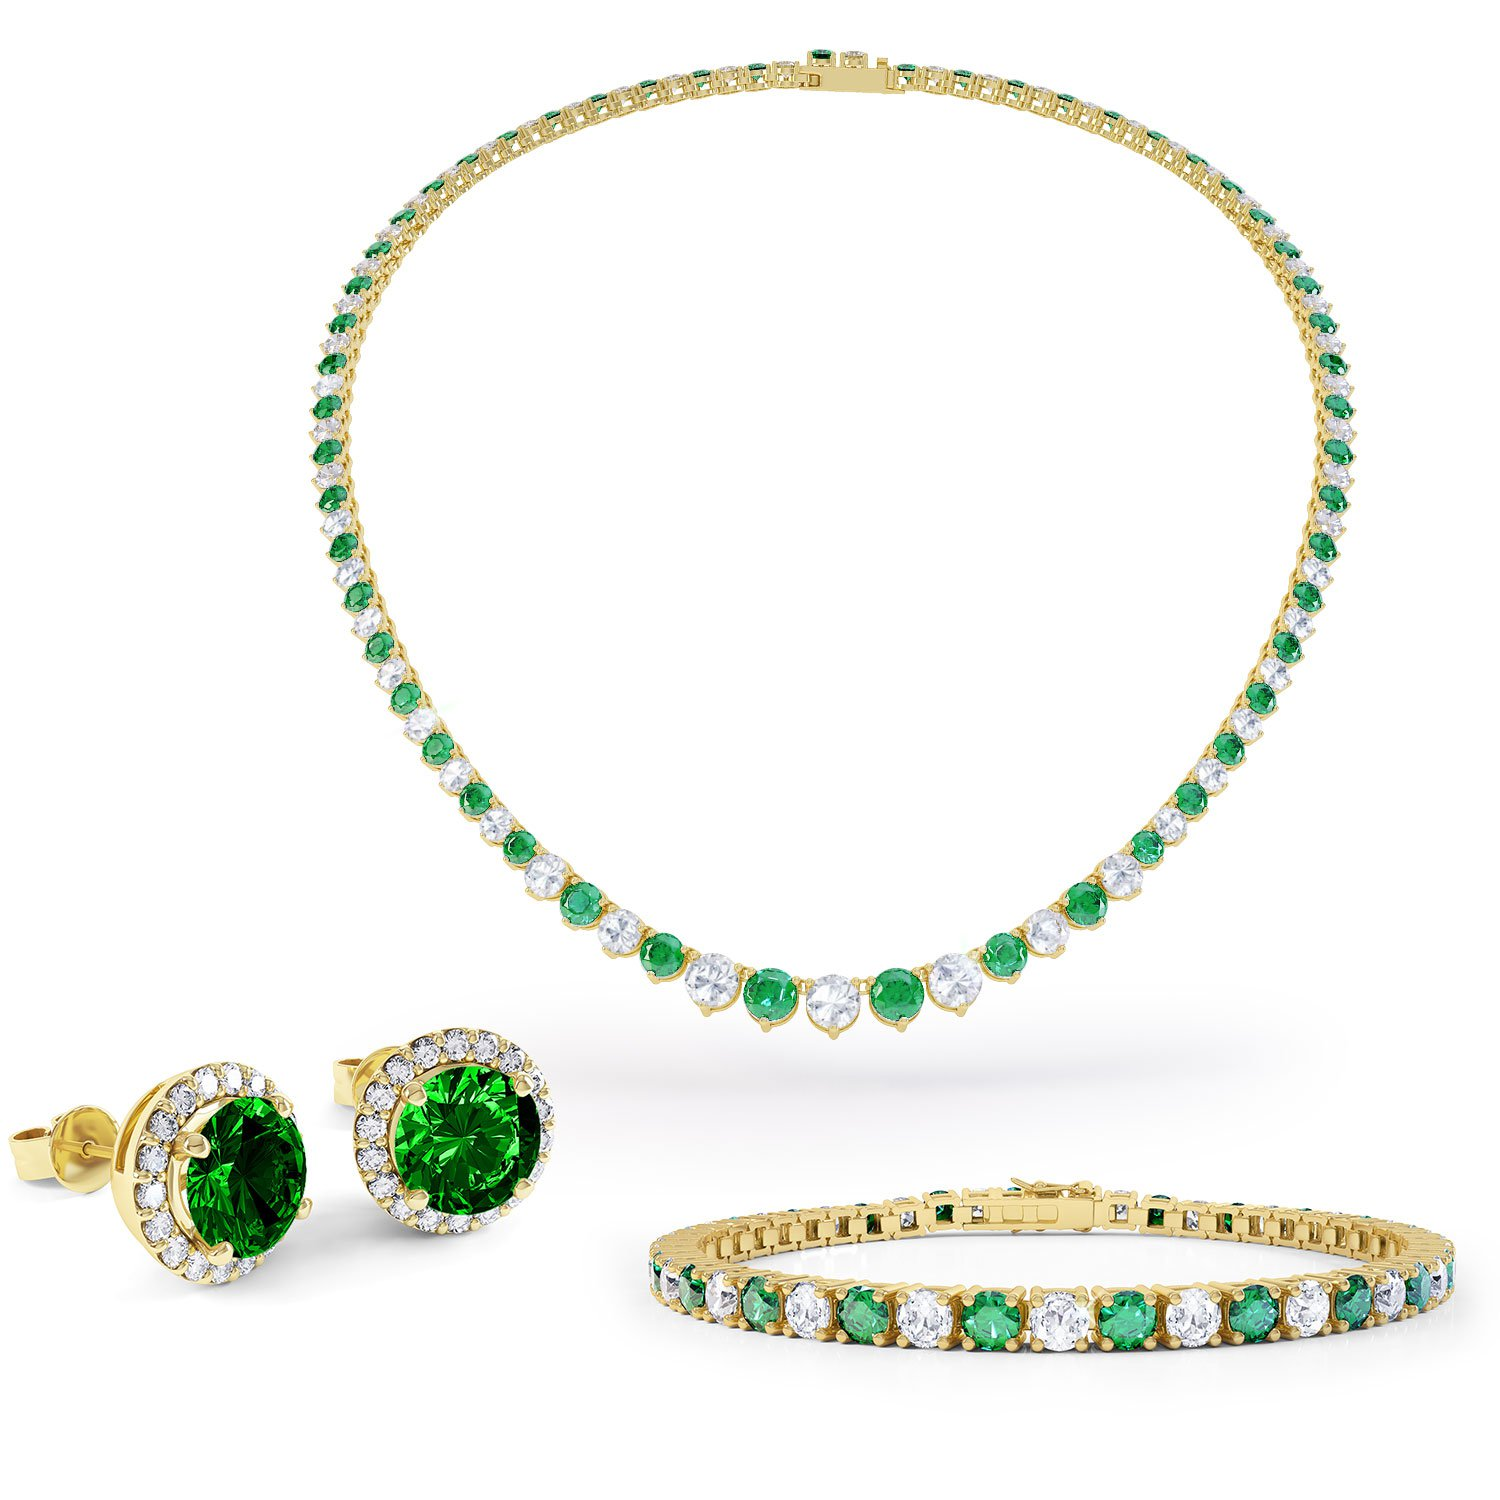 Eternity Emerald 18ct Gold Vermeil Jewellery Set  with Necklace